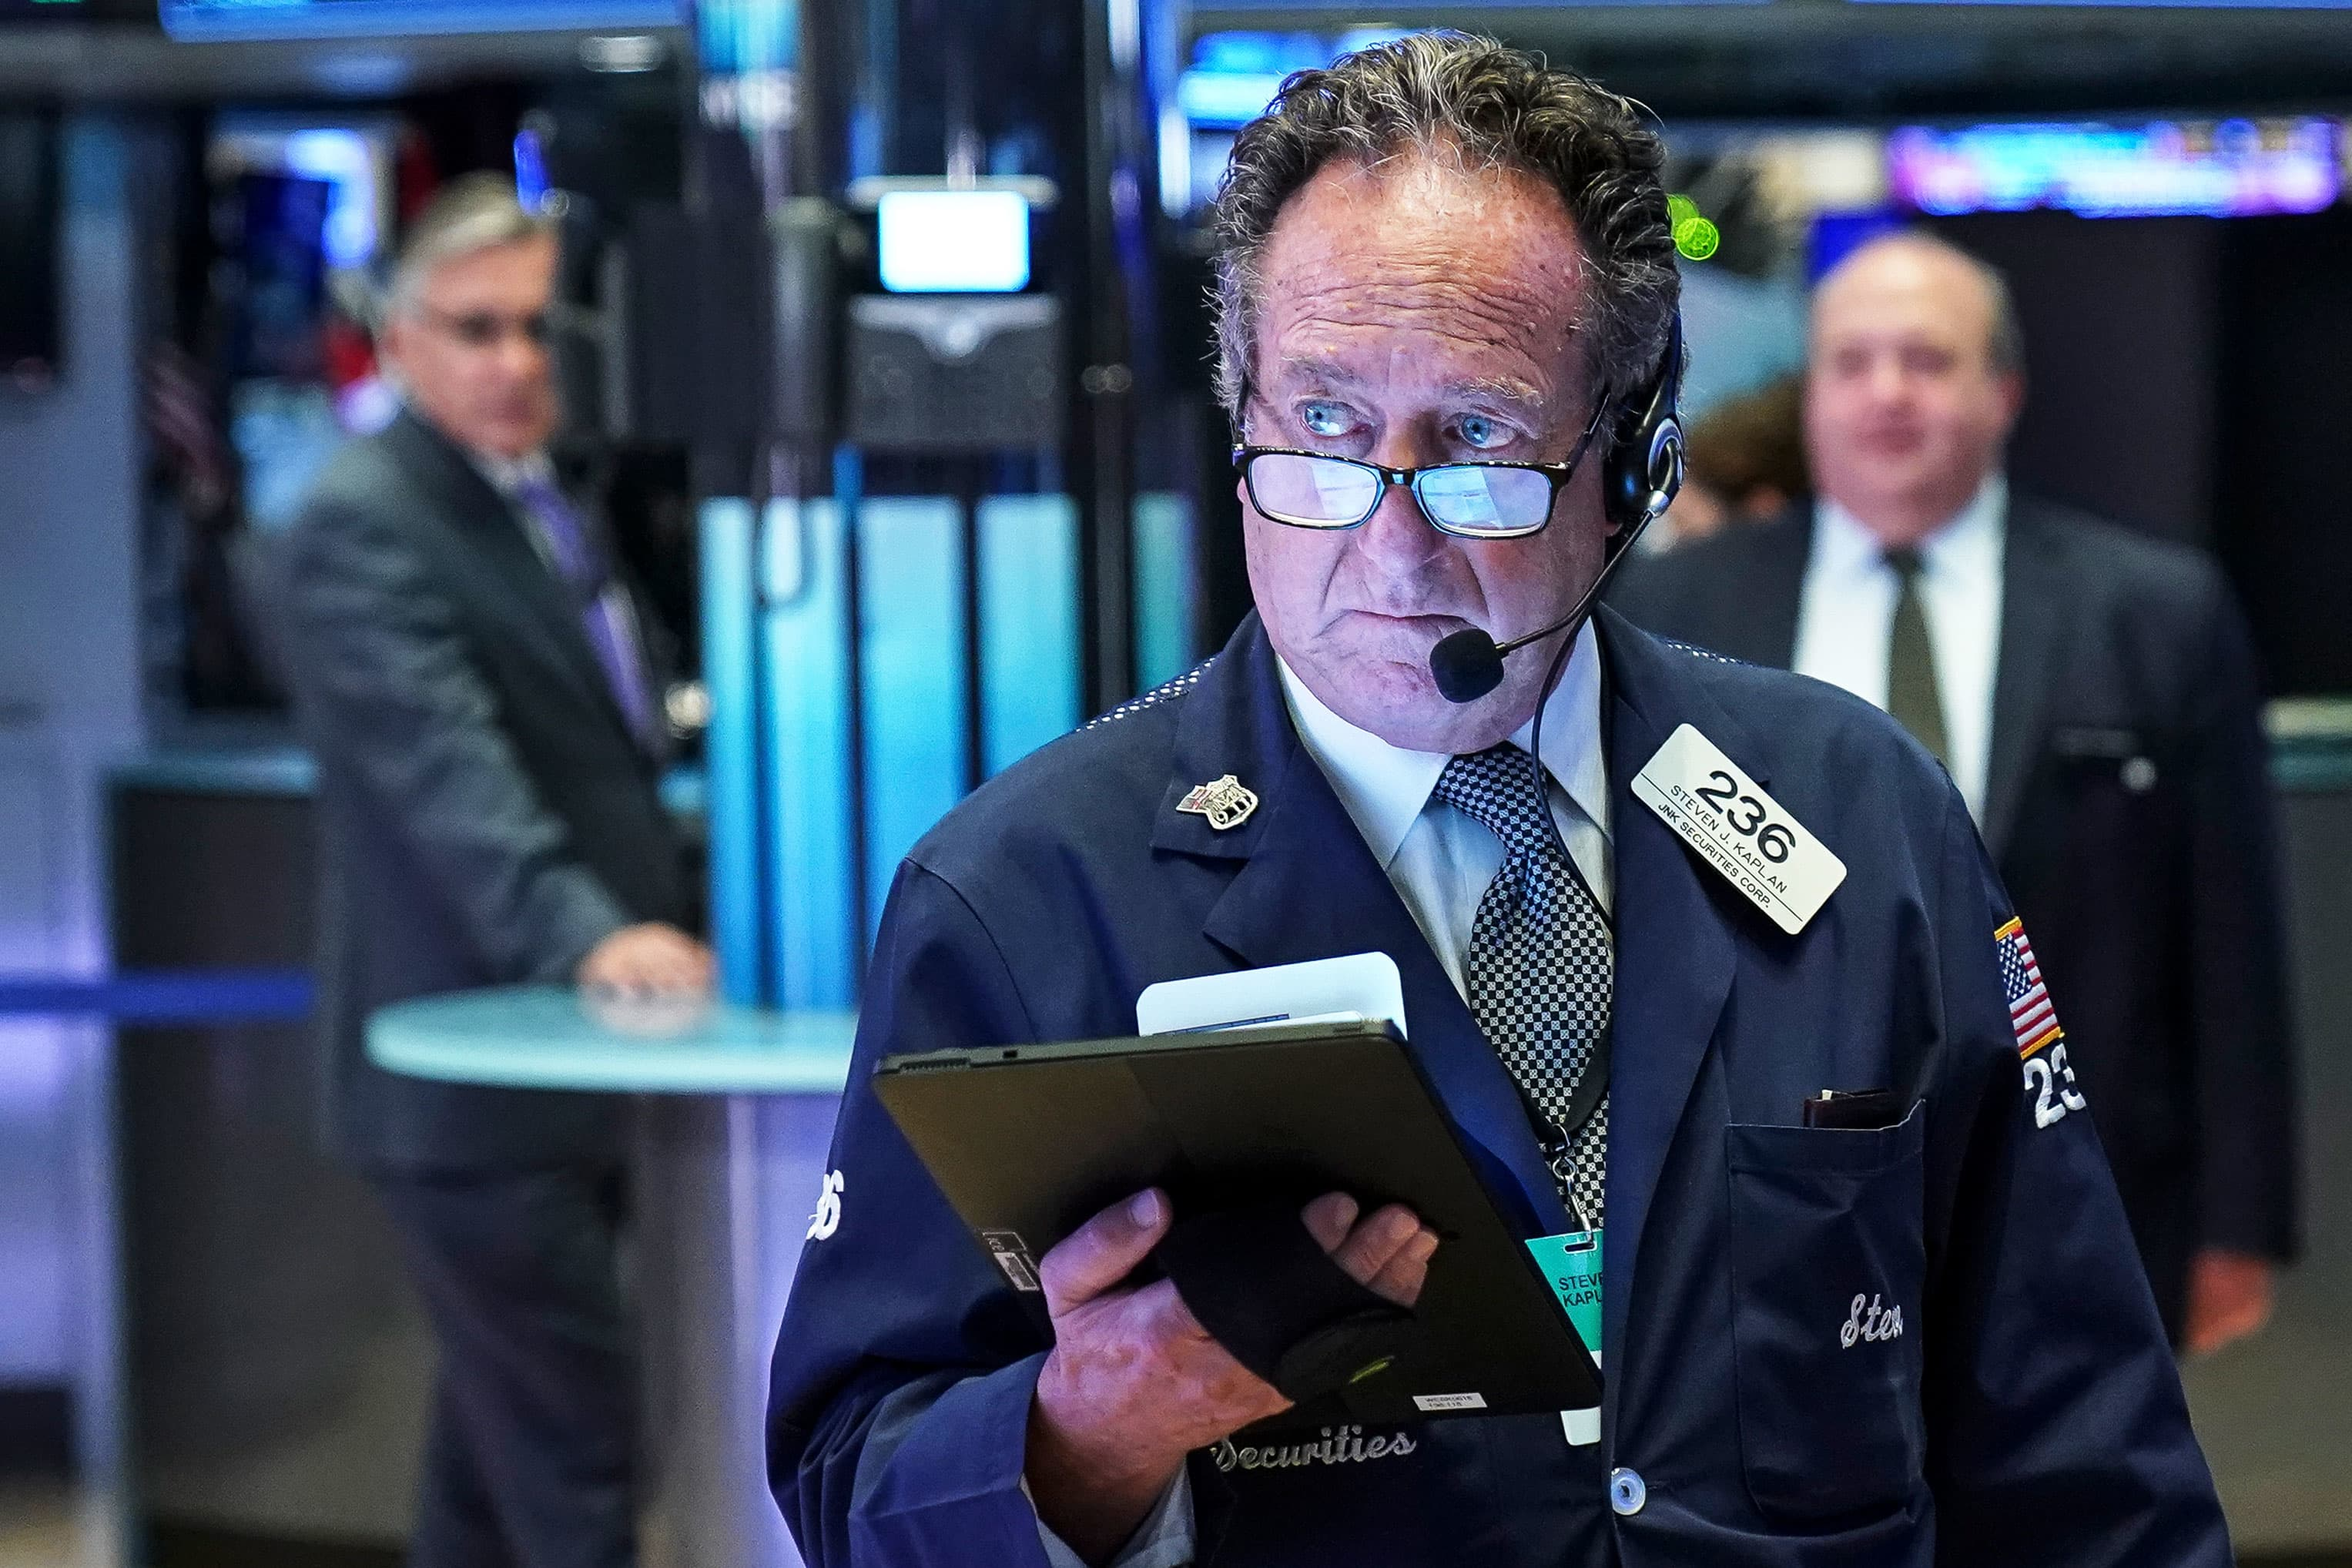 Stock market live updates: Dow down 200, JPMorgan sees 'sell signals,' hedge funds buy tech